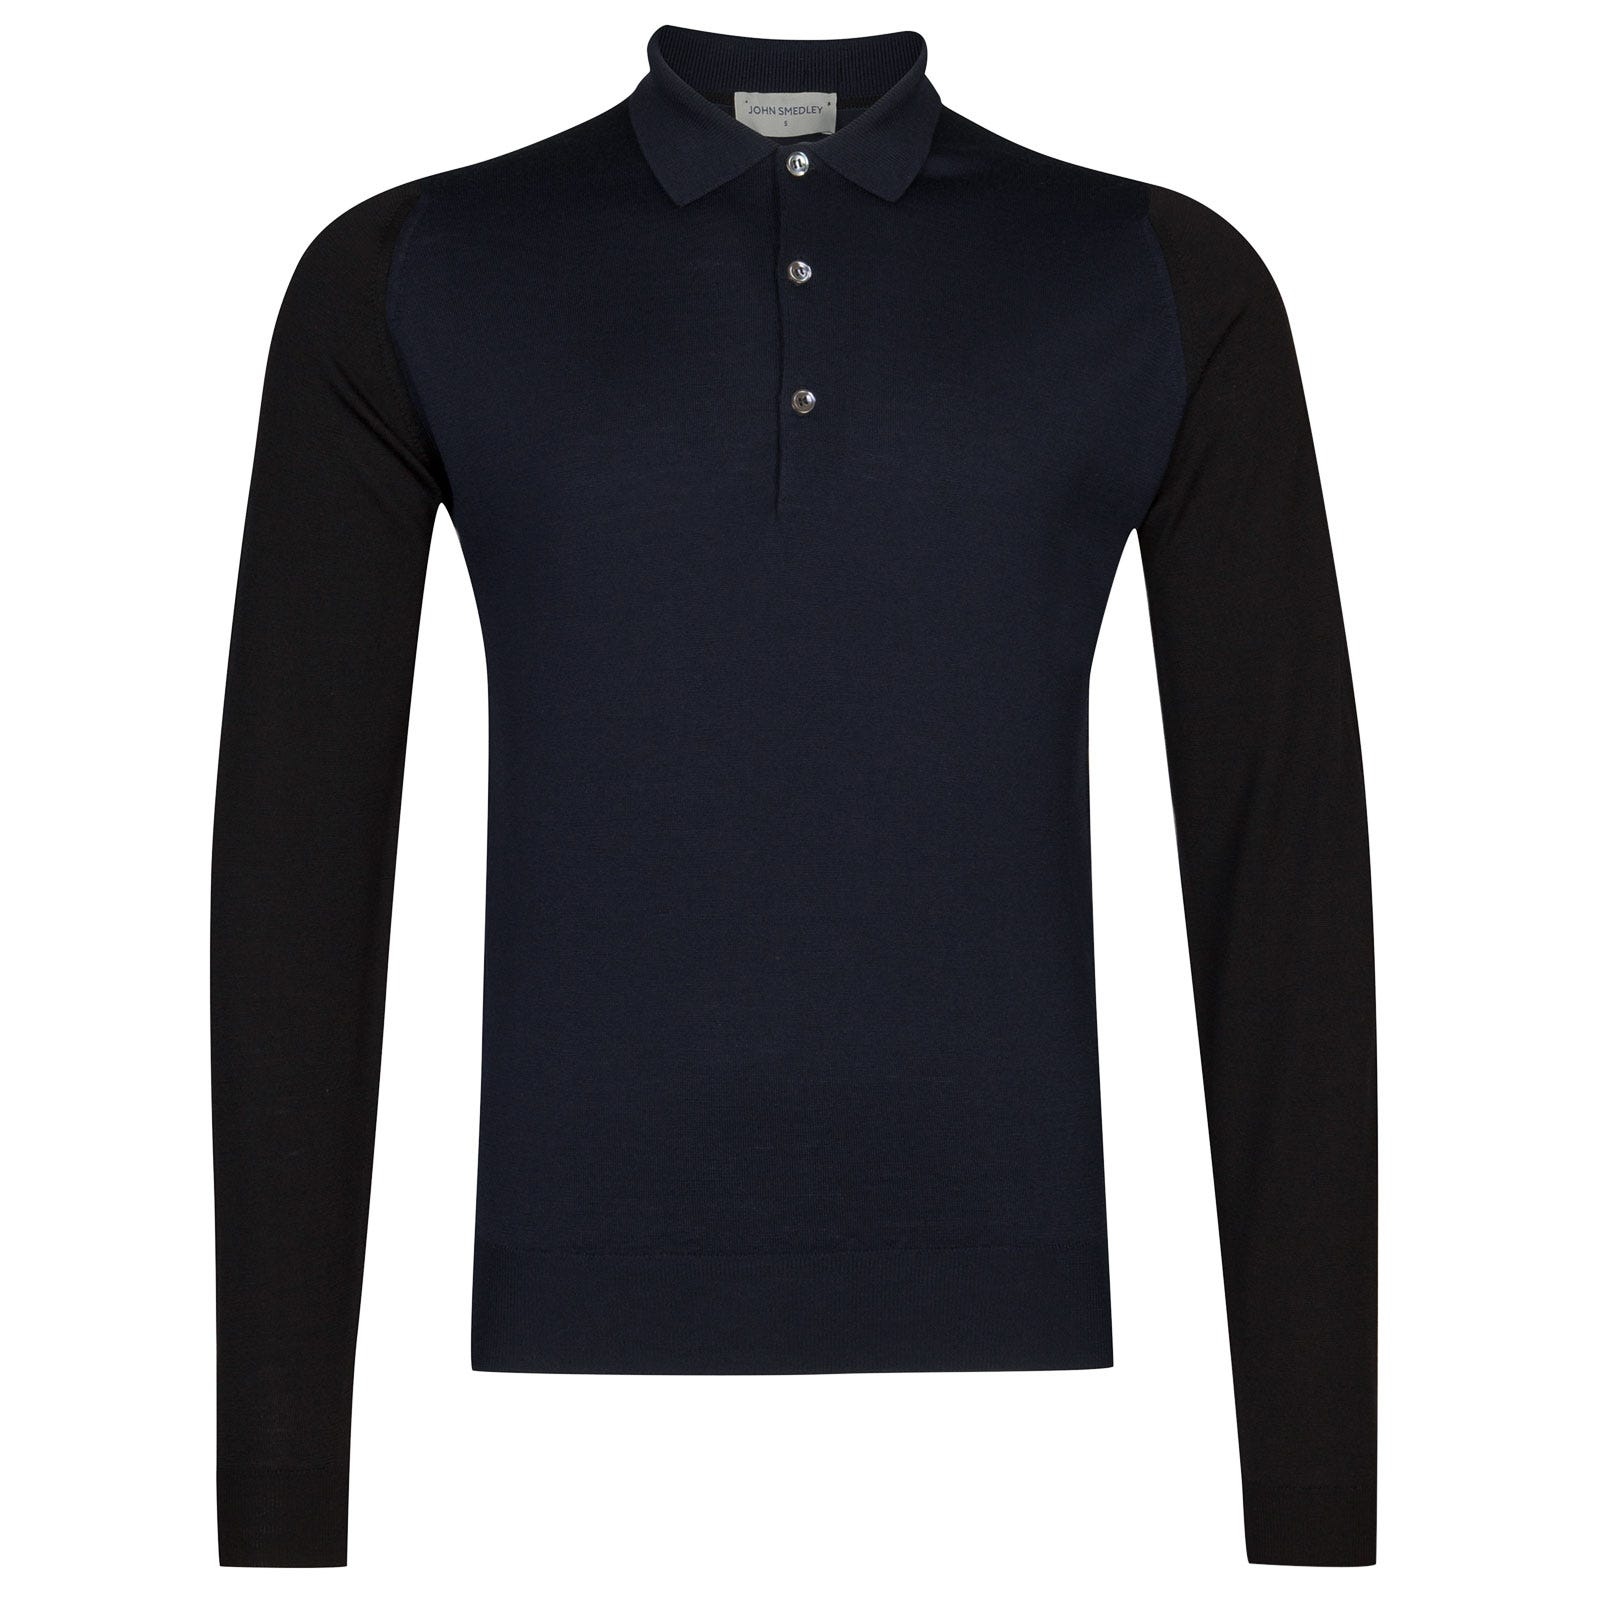 John Smedley Brightgate Merino Wool Shirt in Black/Midnight-S